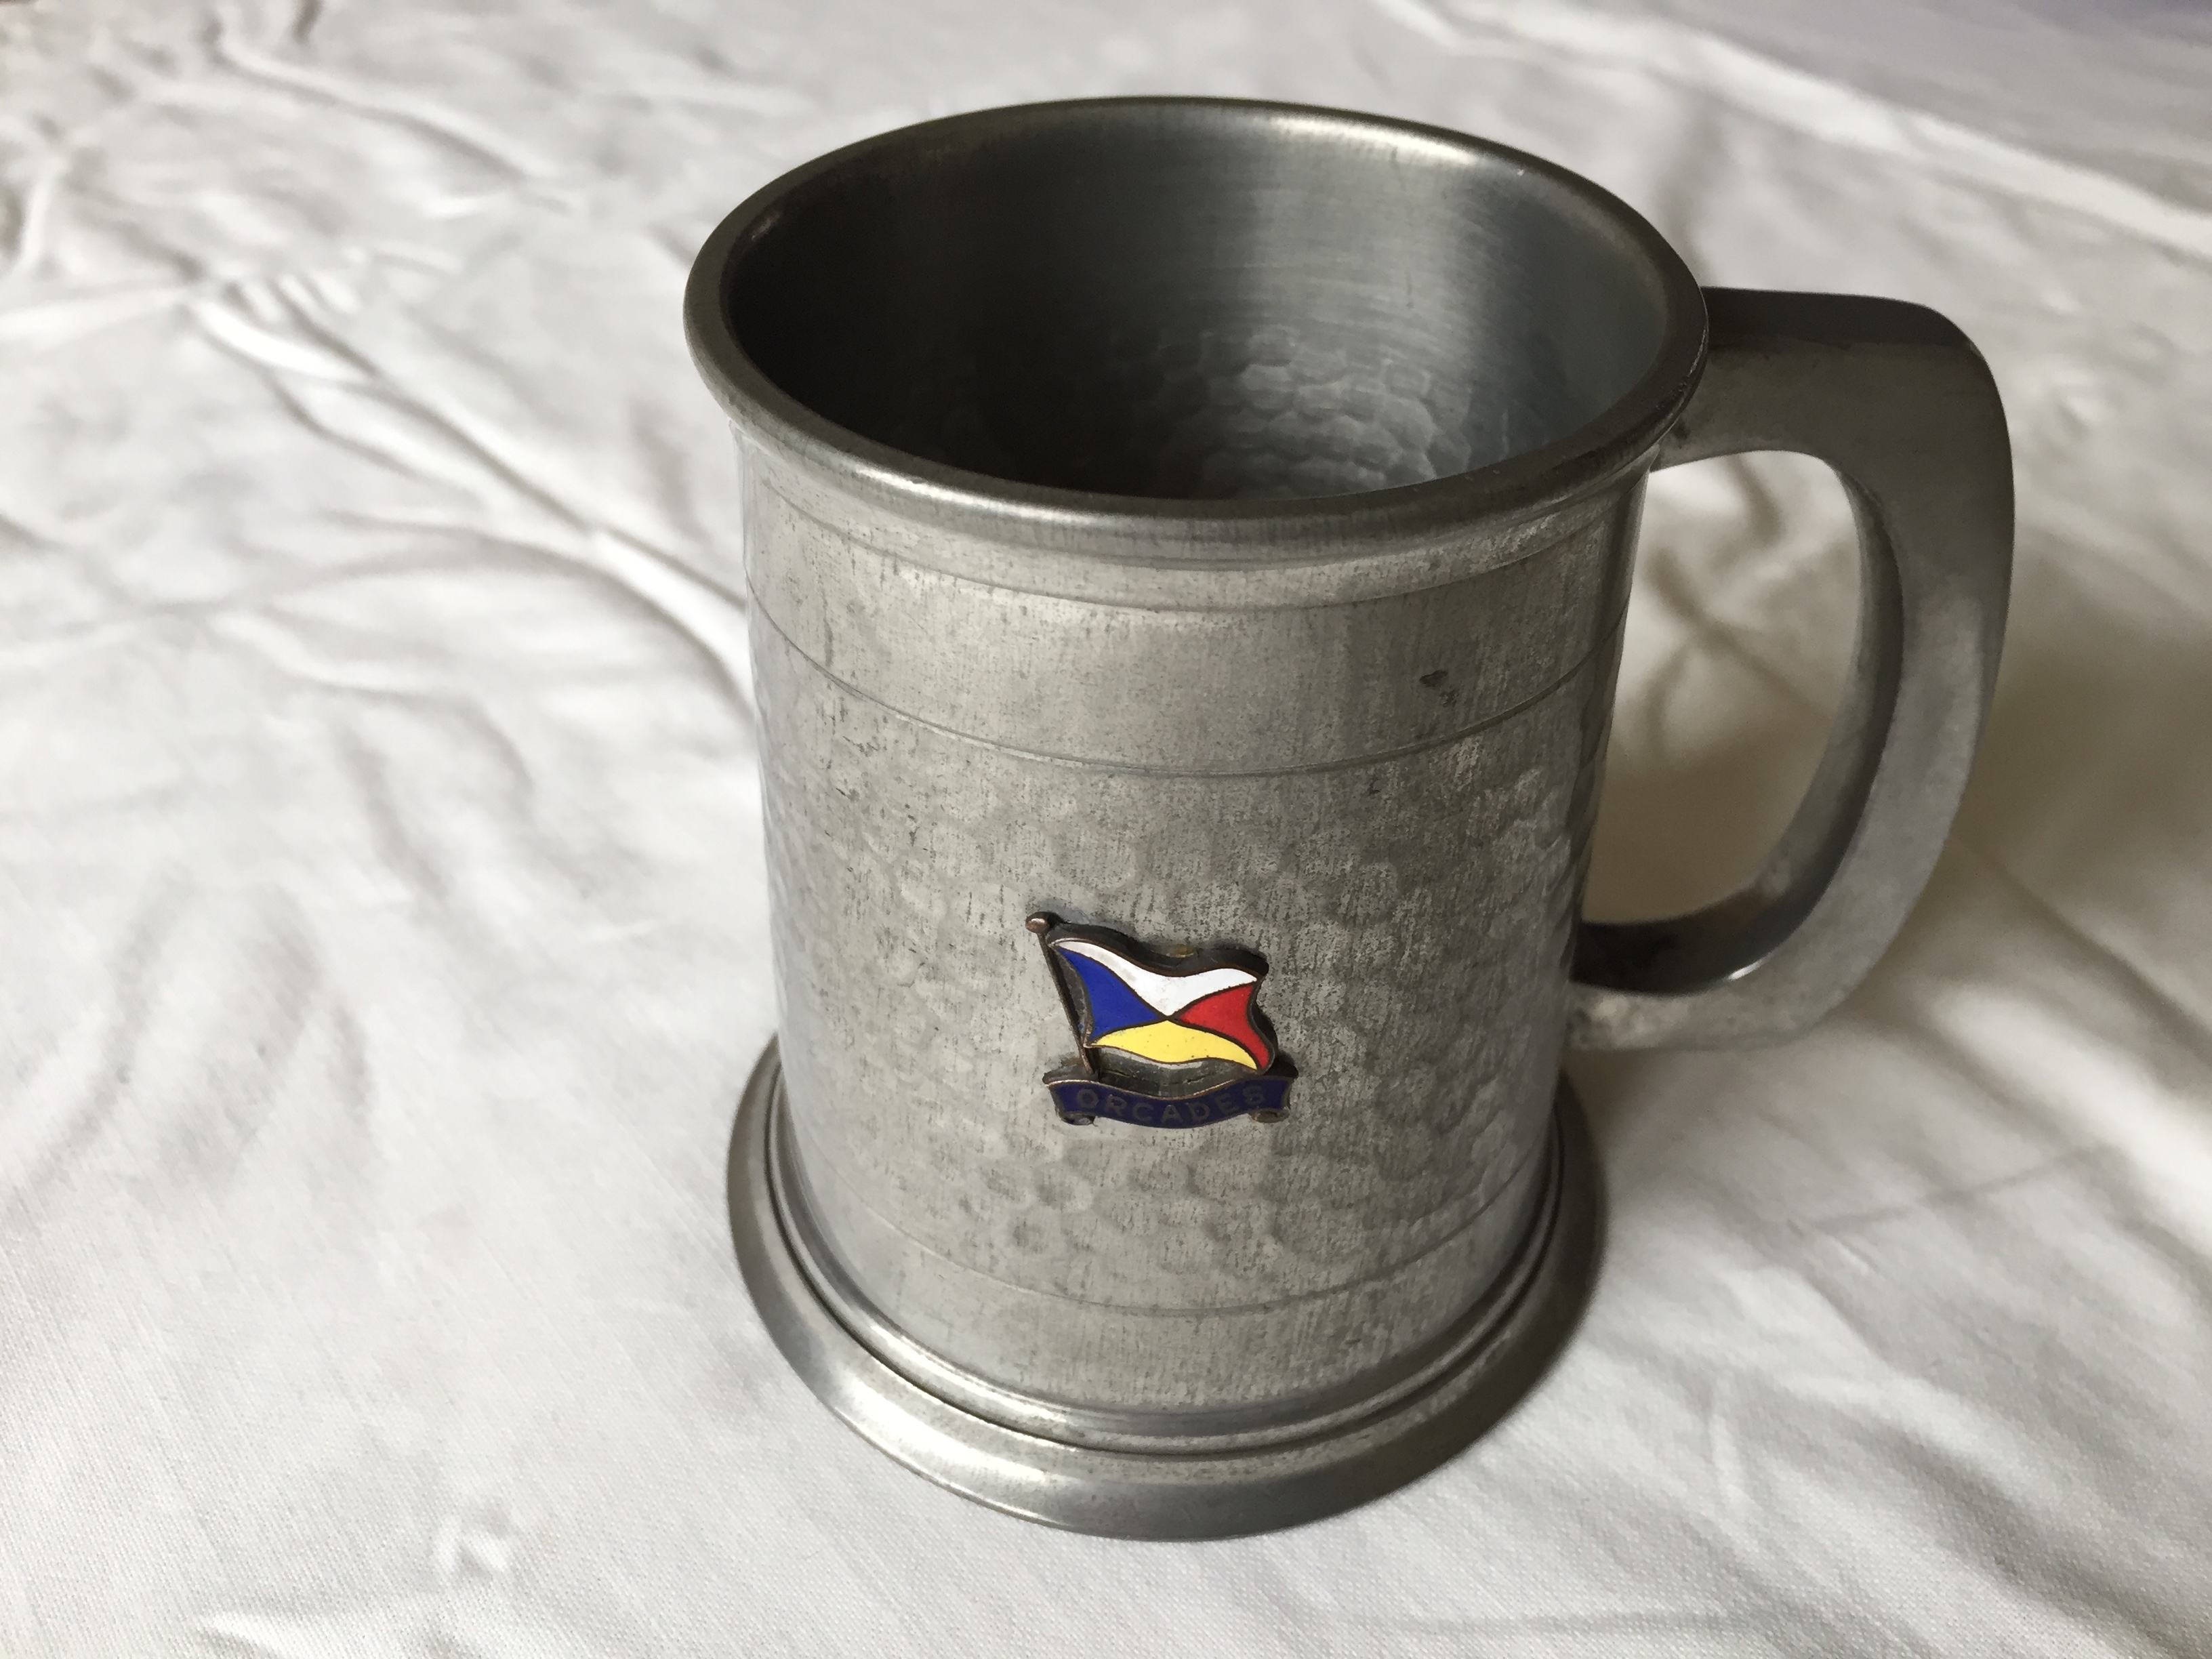 SMALL SOUVENIR TANKARD FROM THE ORIENT LINE VESSEL THE RMS ORCADES